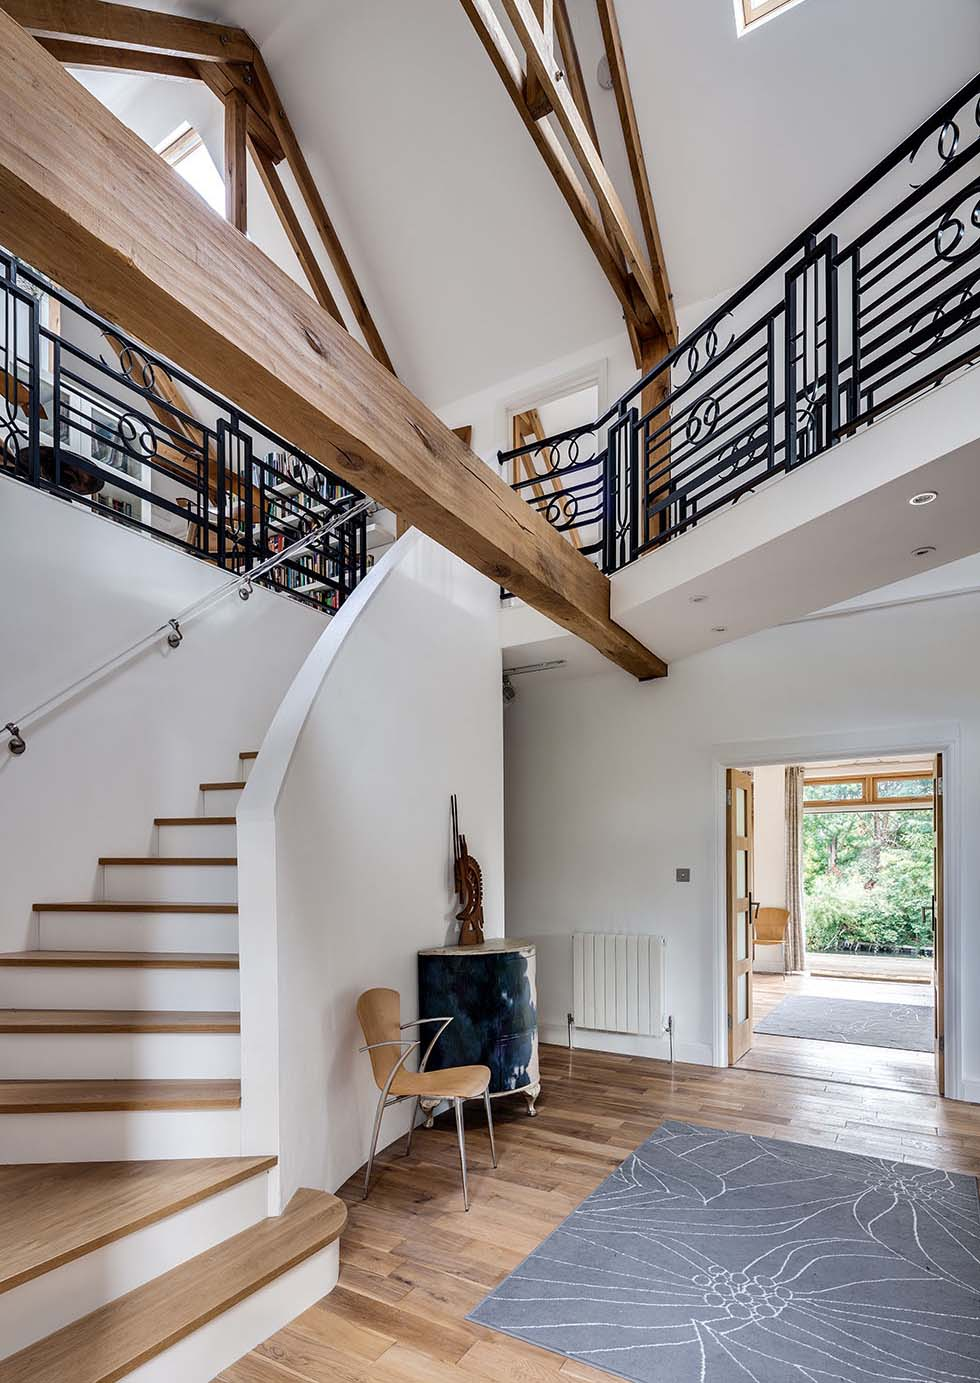 The feature staircase